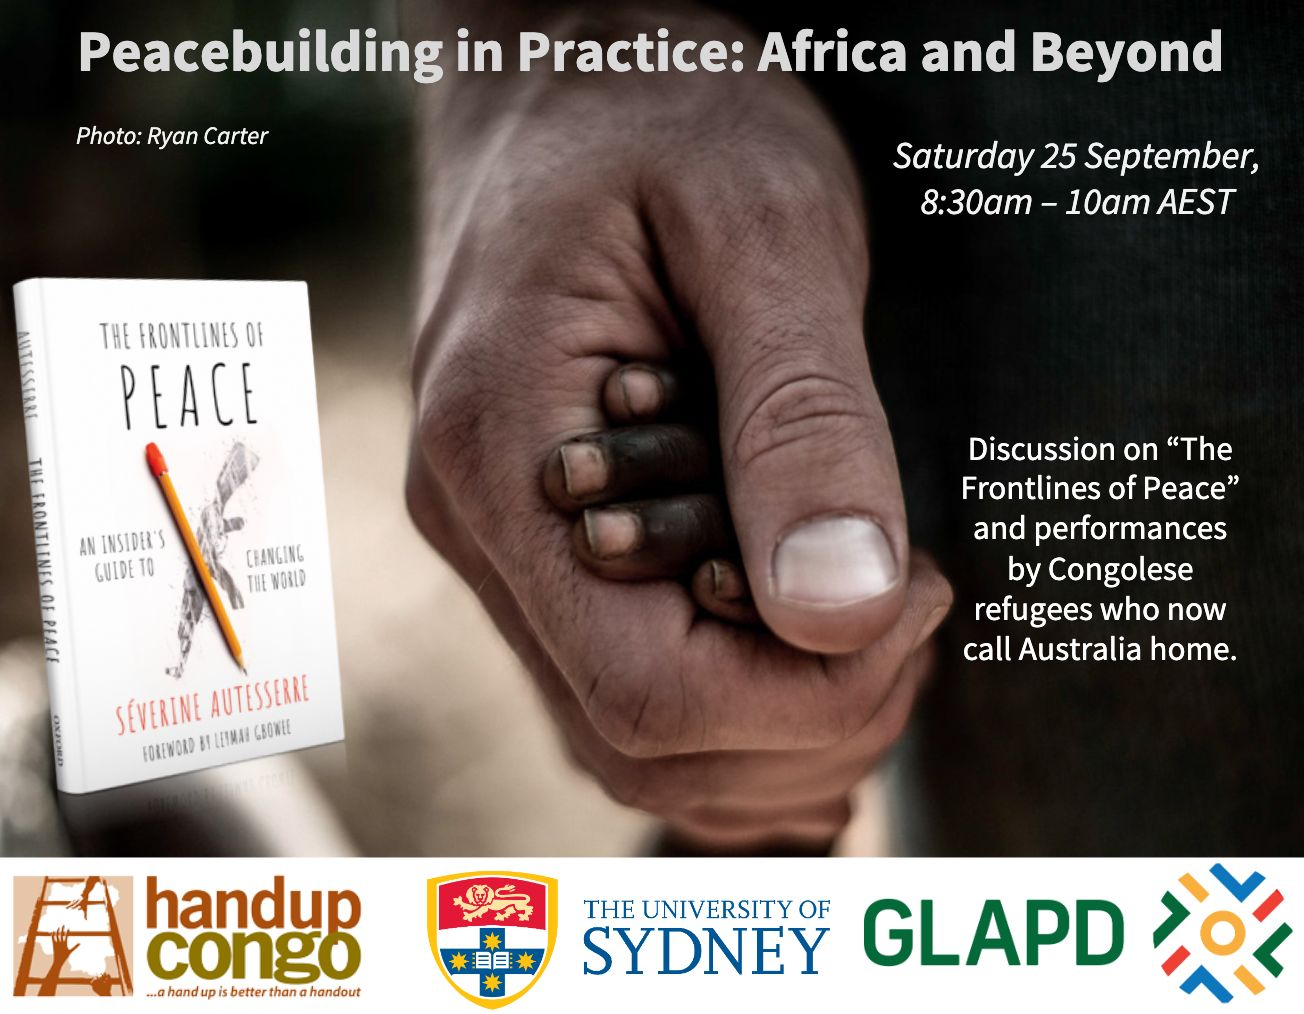 Peacebuilding in Africa and Beyond